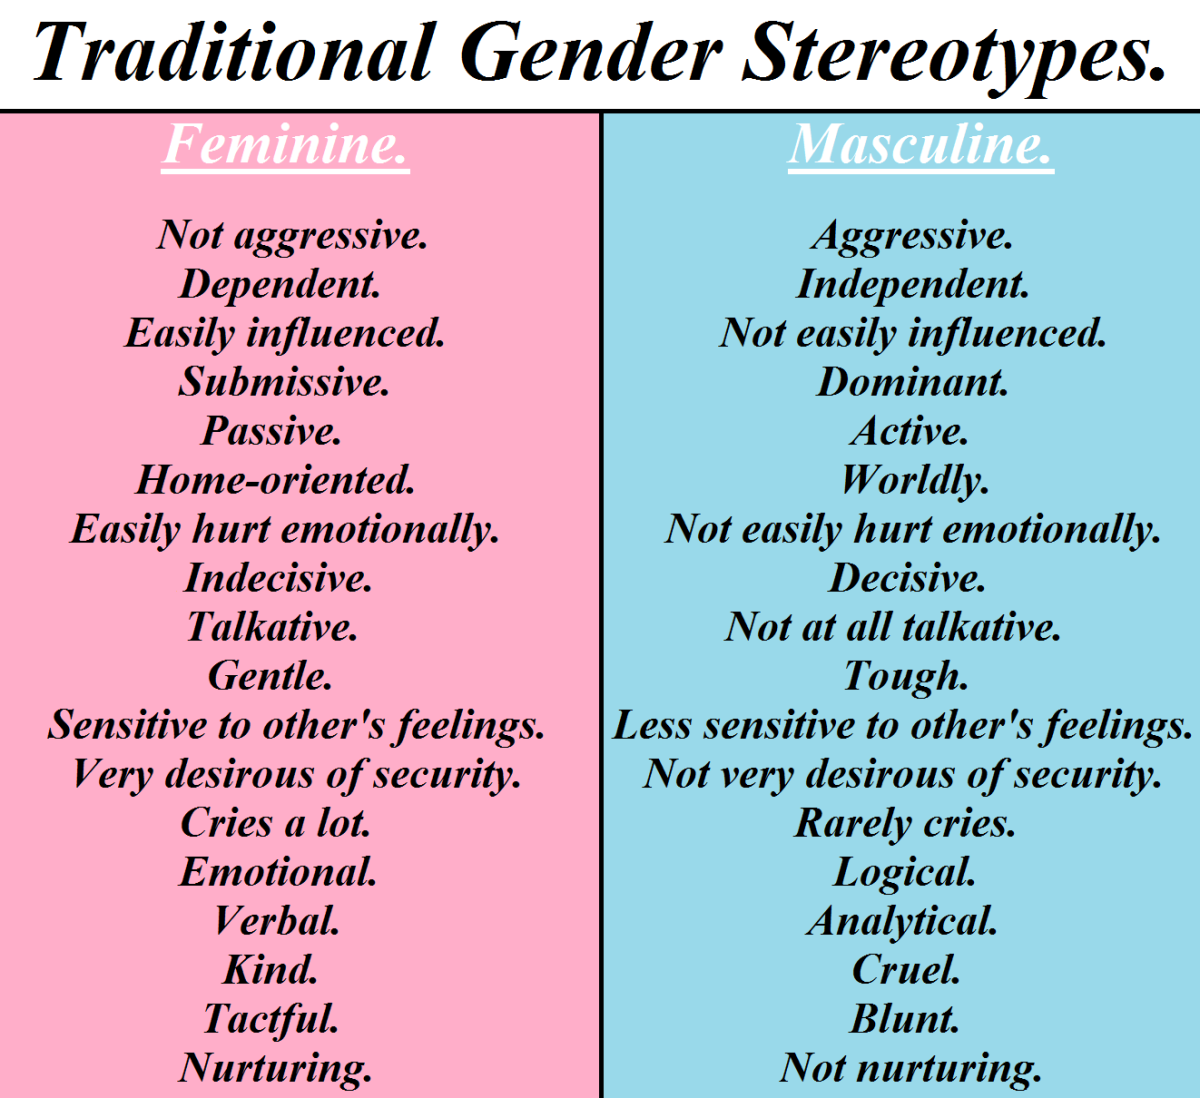 How are gender and gender stereotypes perpetuated by schools